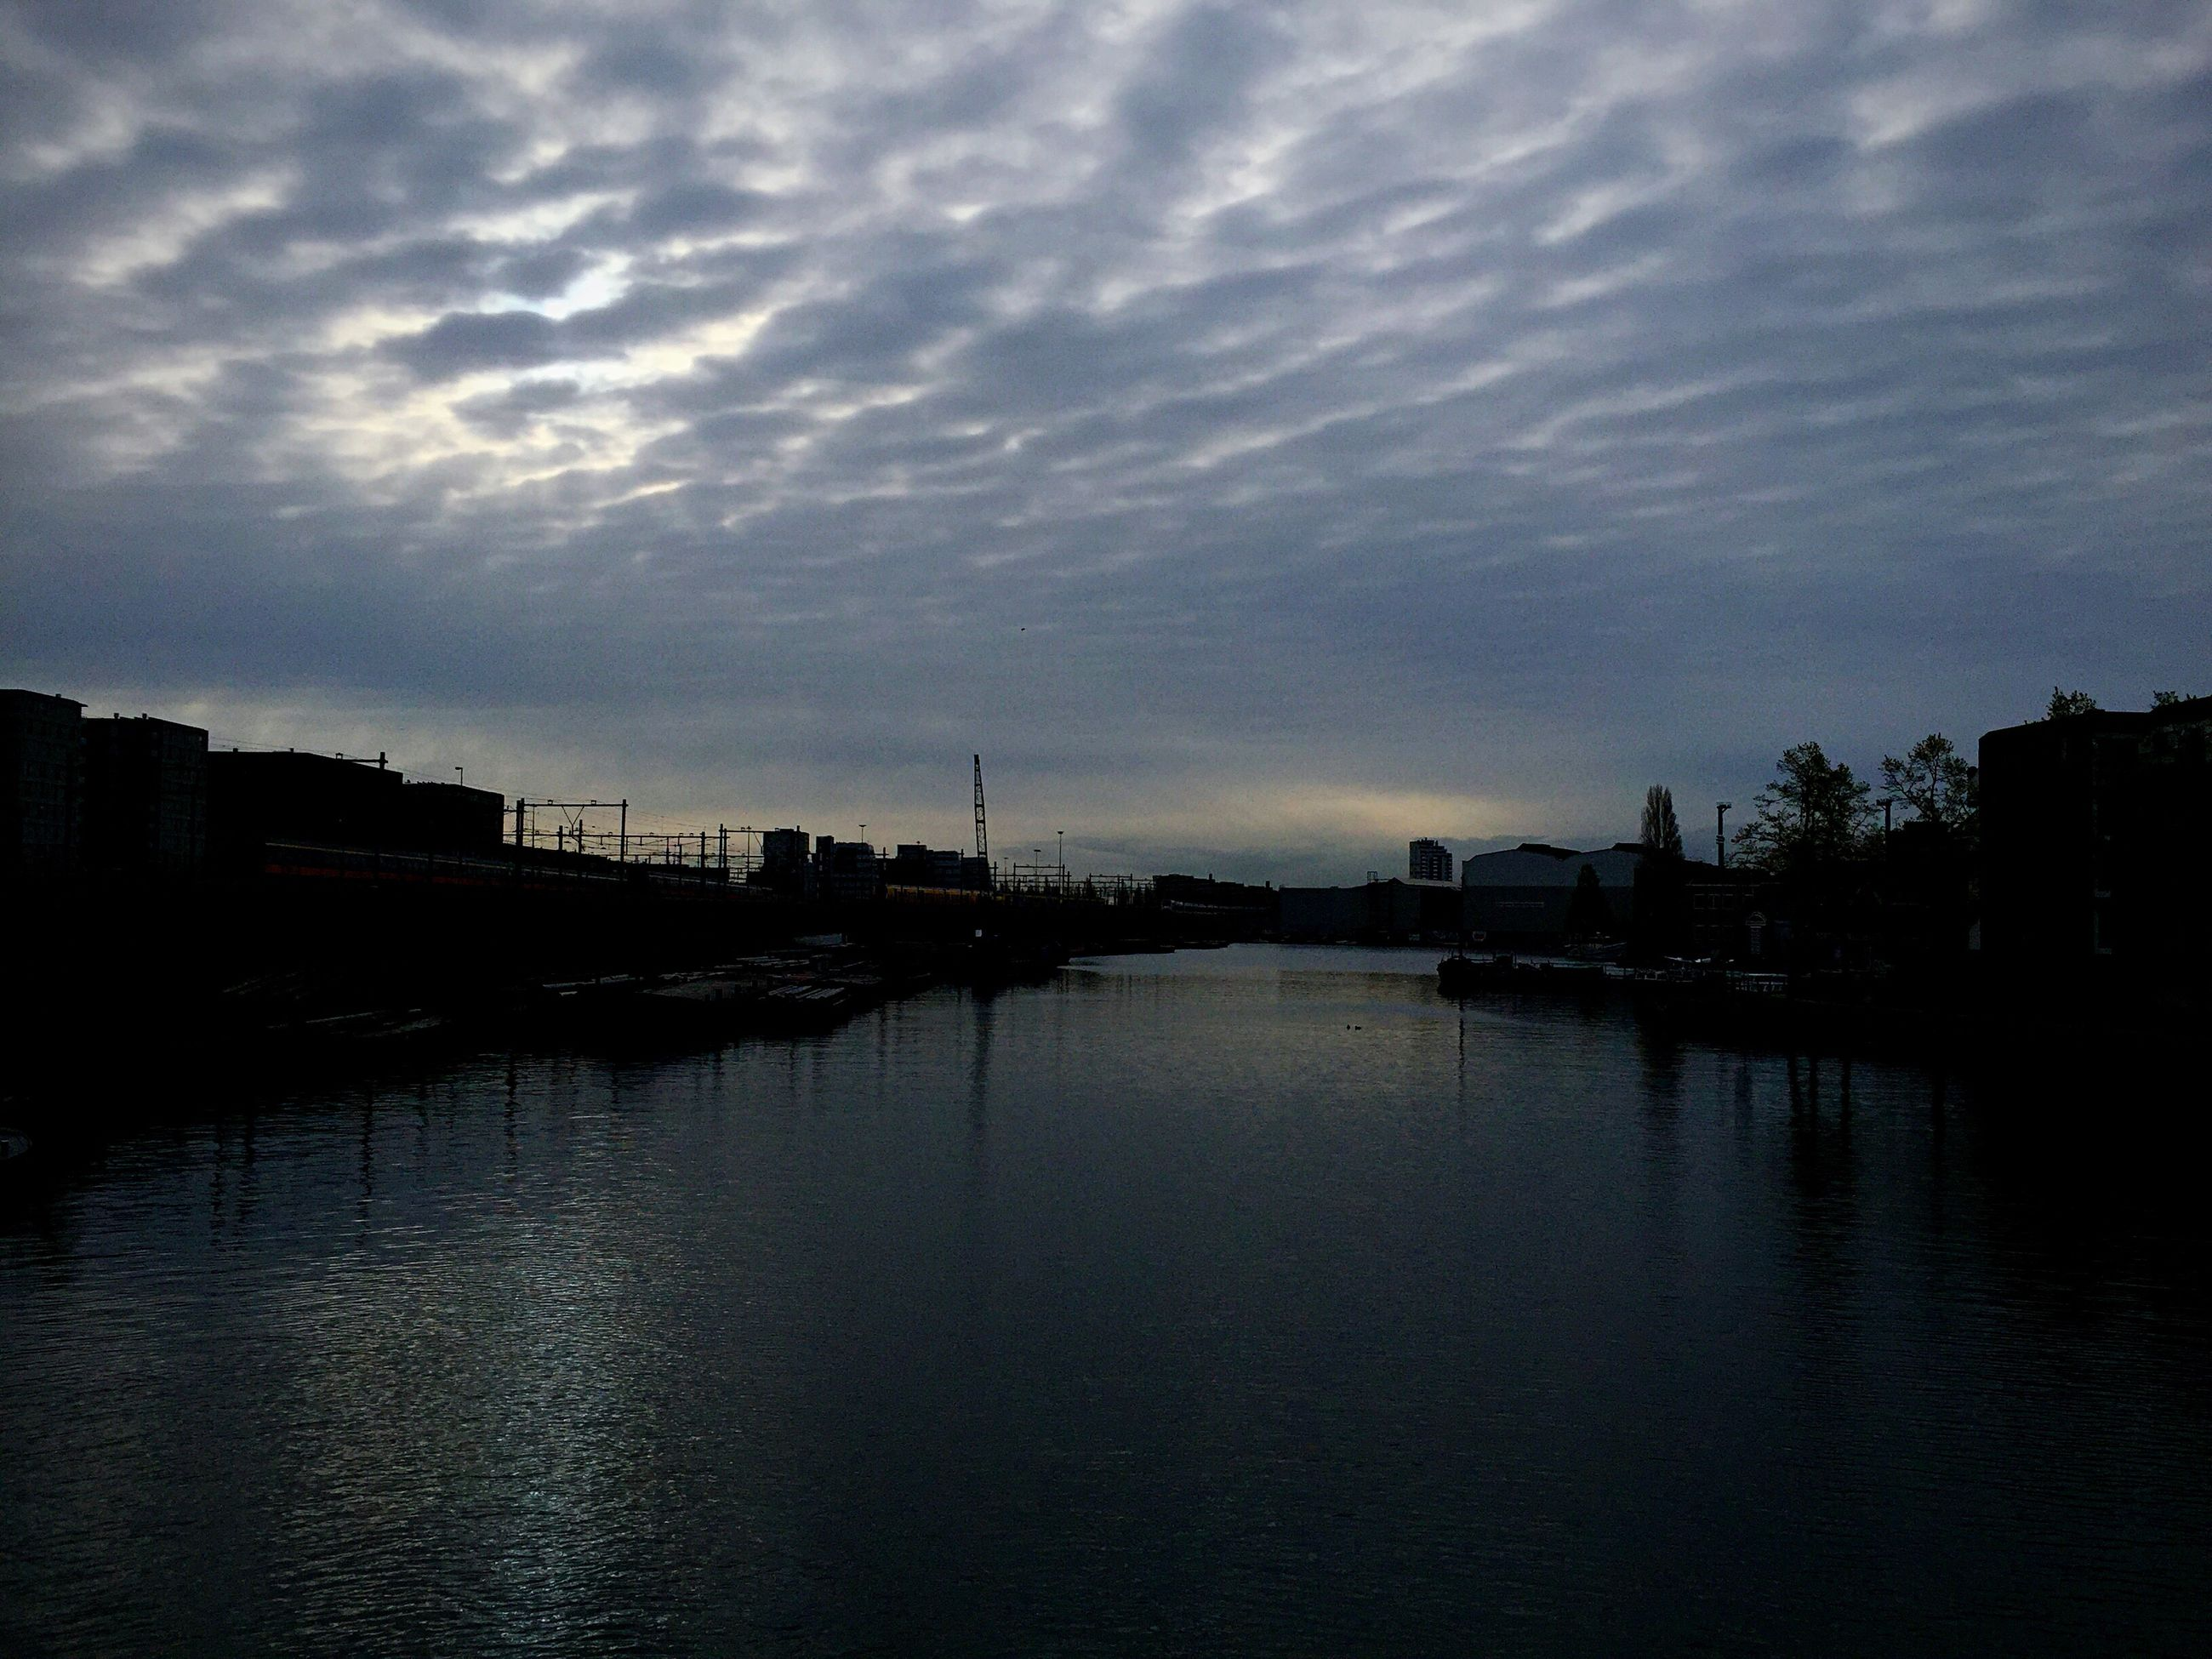 water, sky, cloud - sky, waterfront, cloudy, tranquil scene, scenics, sunset, tranquility, reflection, building exterior, built structure, silhouette, beauty in nature, architecture, cloud, nature, sea, lake, dusk